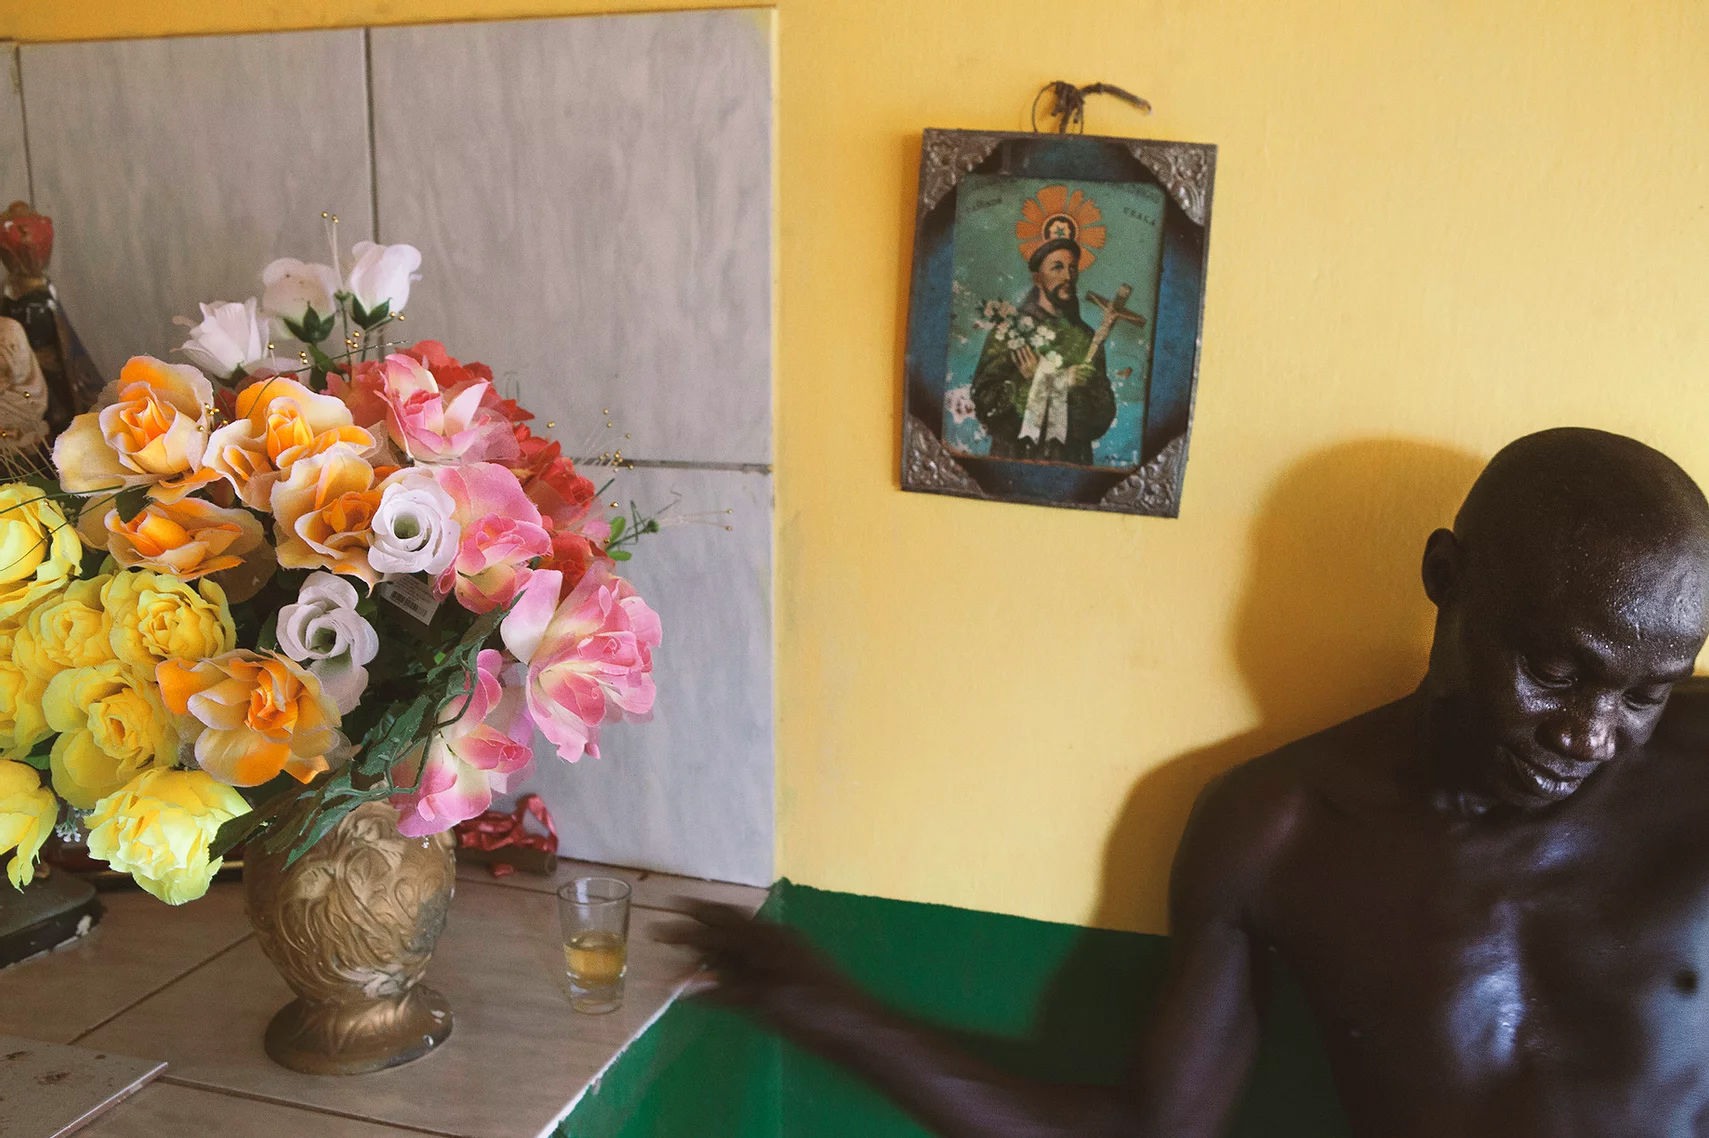 color photo by Alex Almeida from Brazil Tropical light. man at home, flowers.